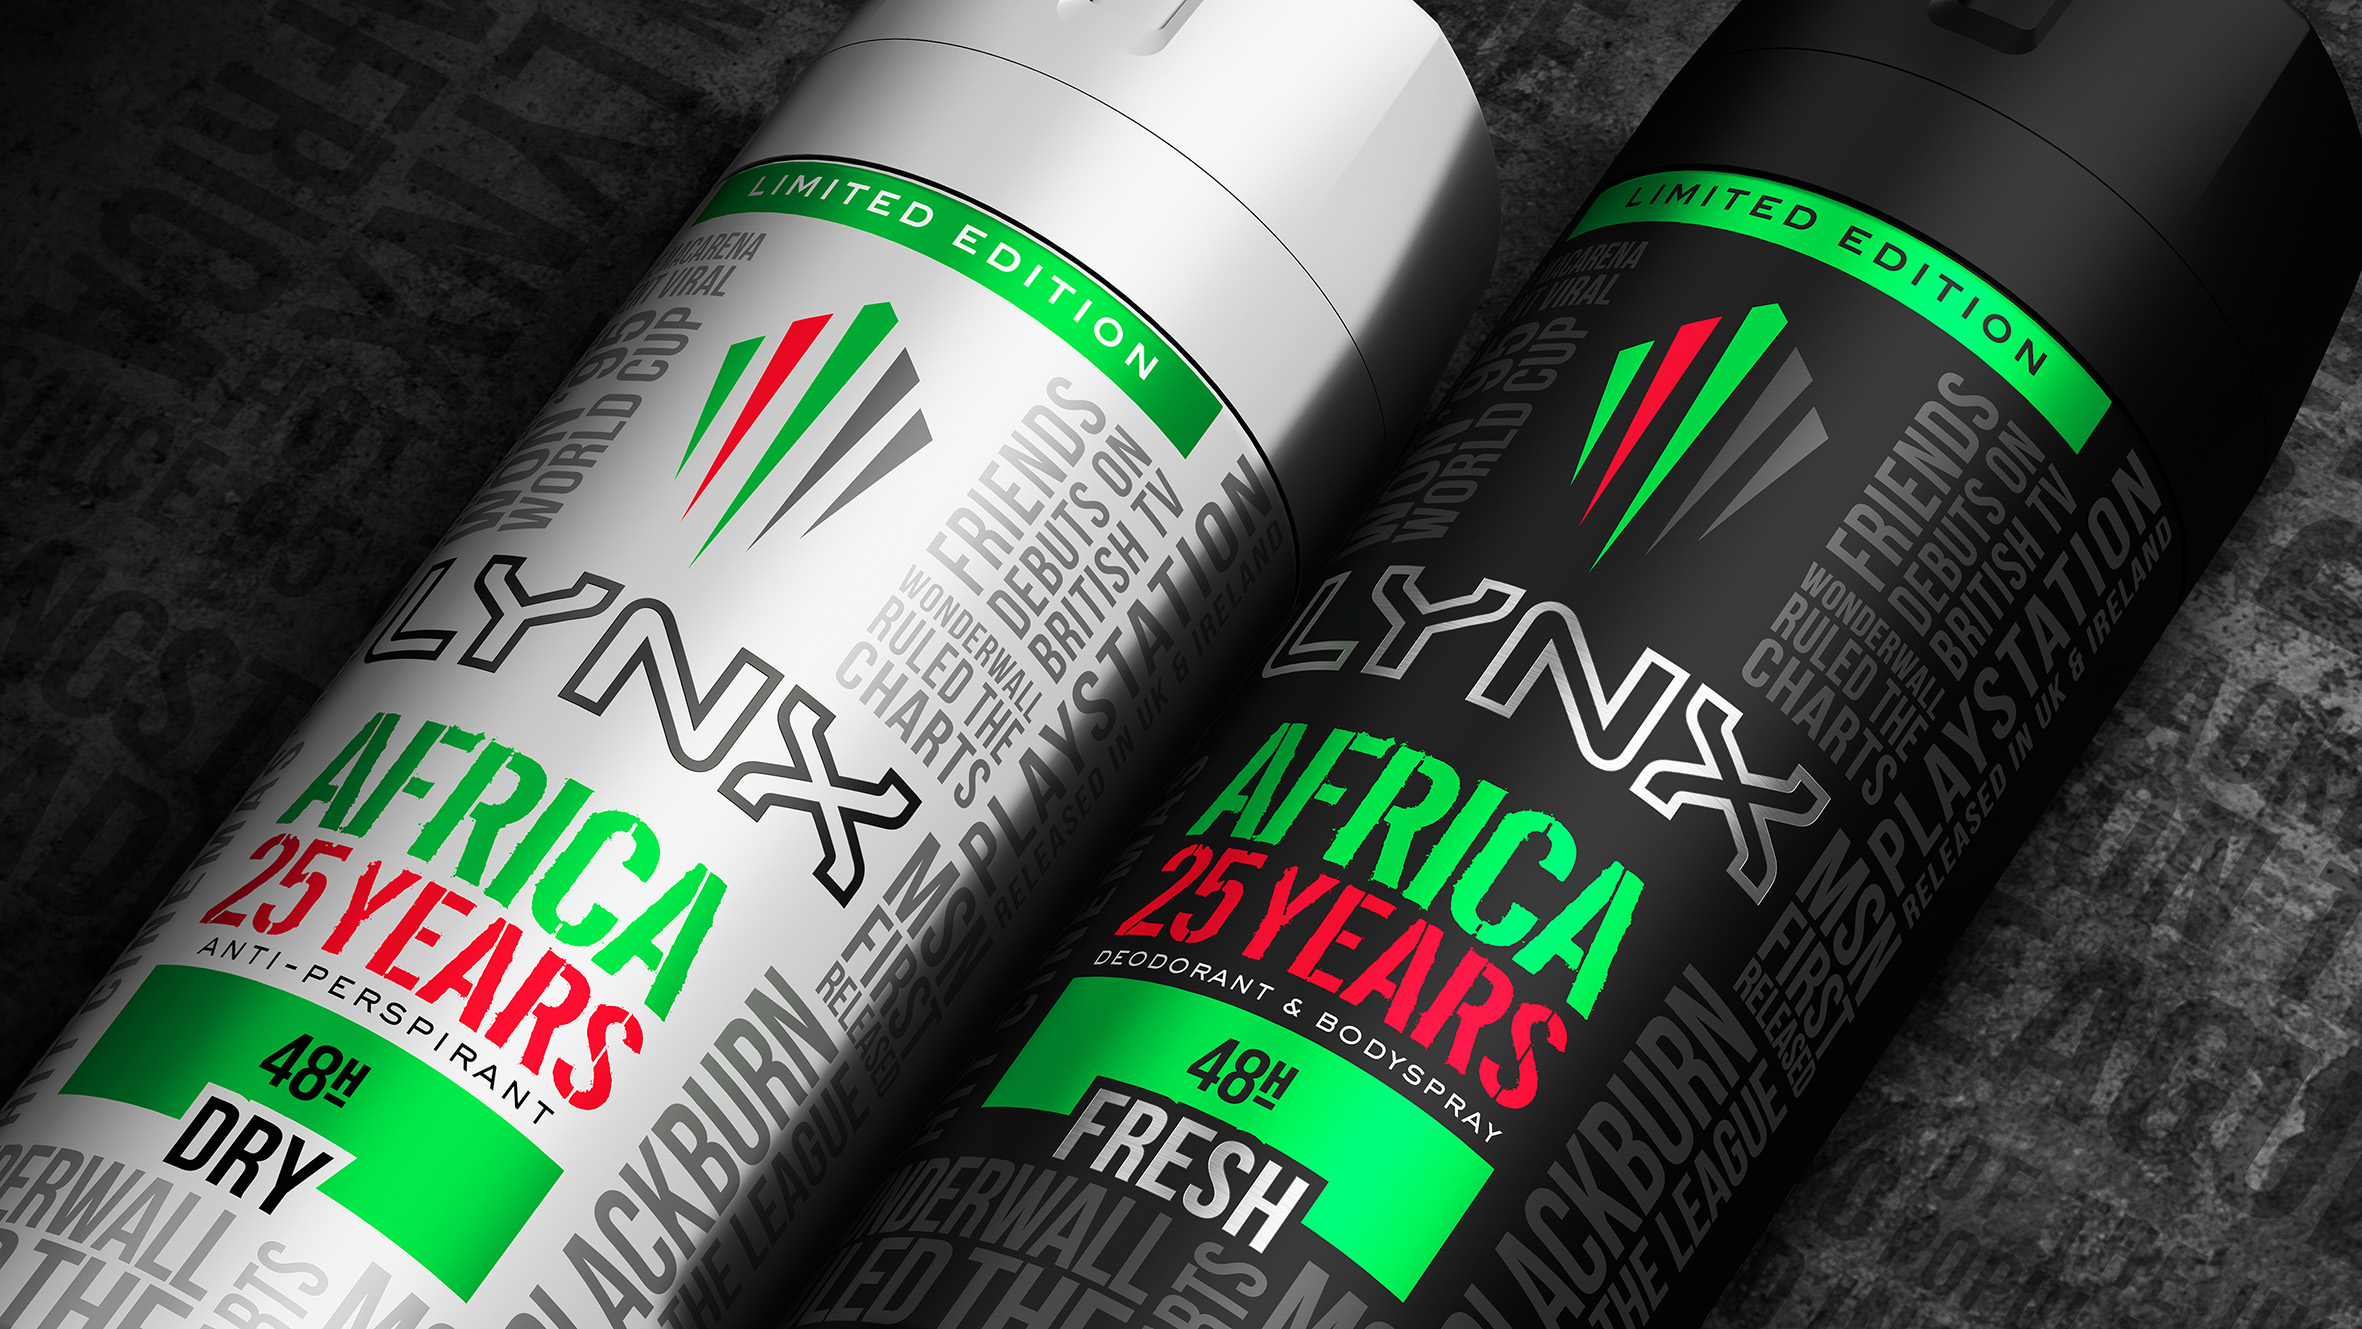 Hot Since '95: LYNX Africa Celebrates 25 Years with Limited Edition Range by PB Creative